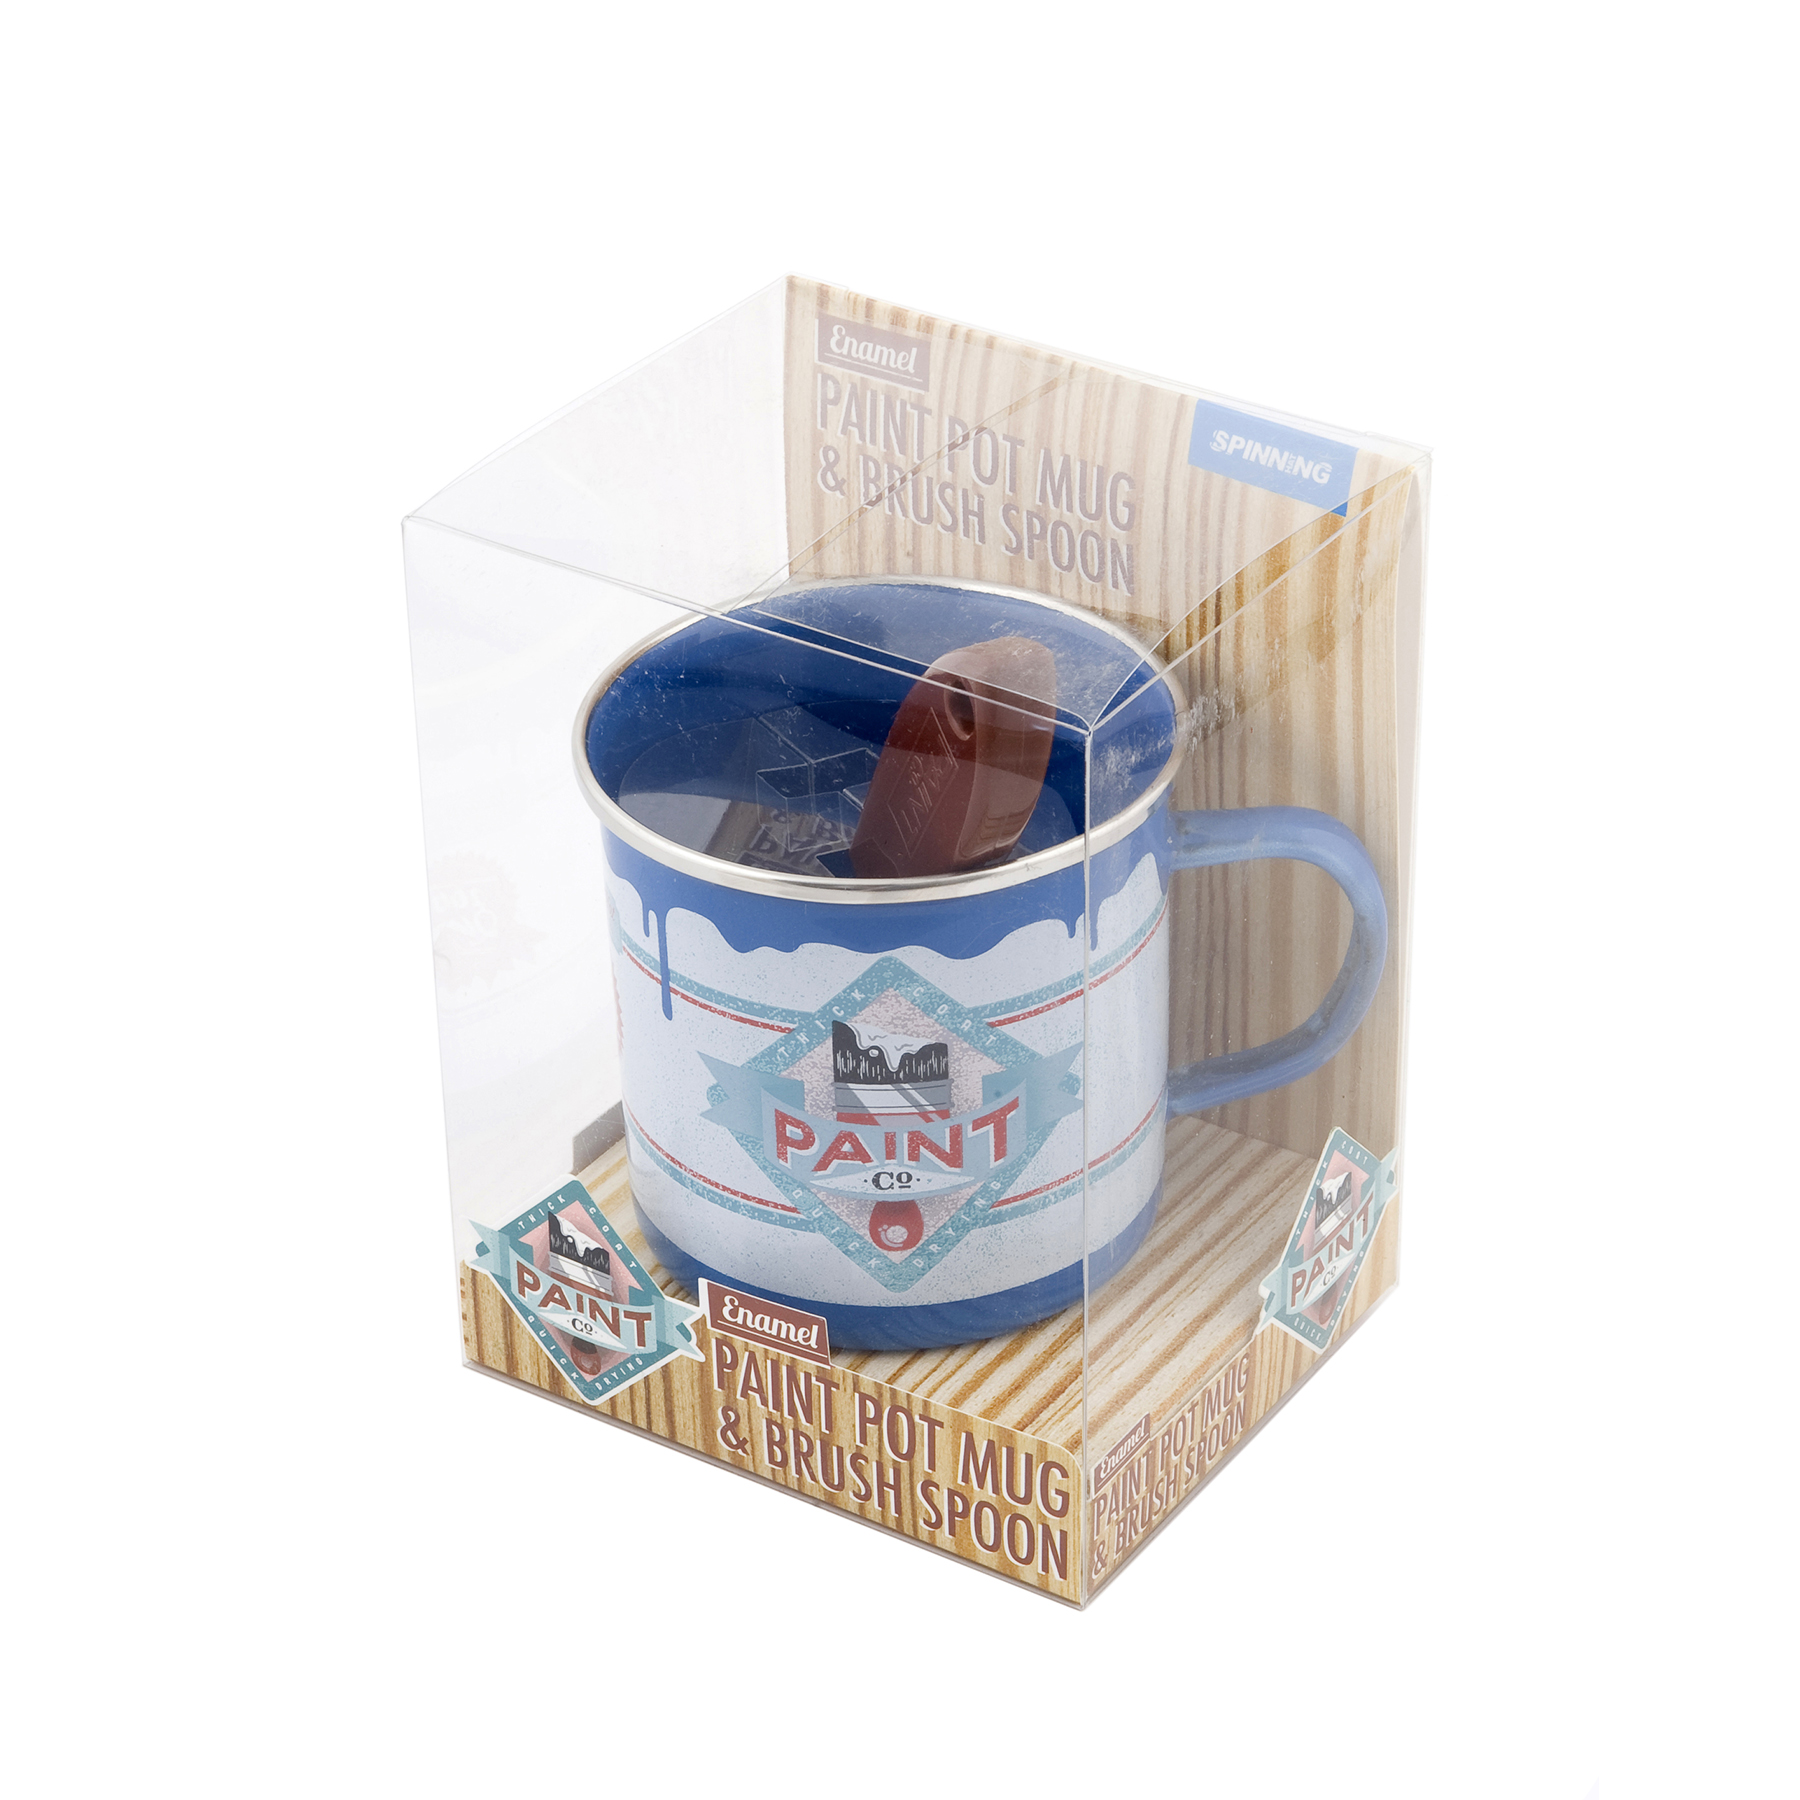 New blue paint pot enamel mug and spoon brush set novelty retro camping gift fun - Exterior blue paint set ...